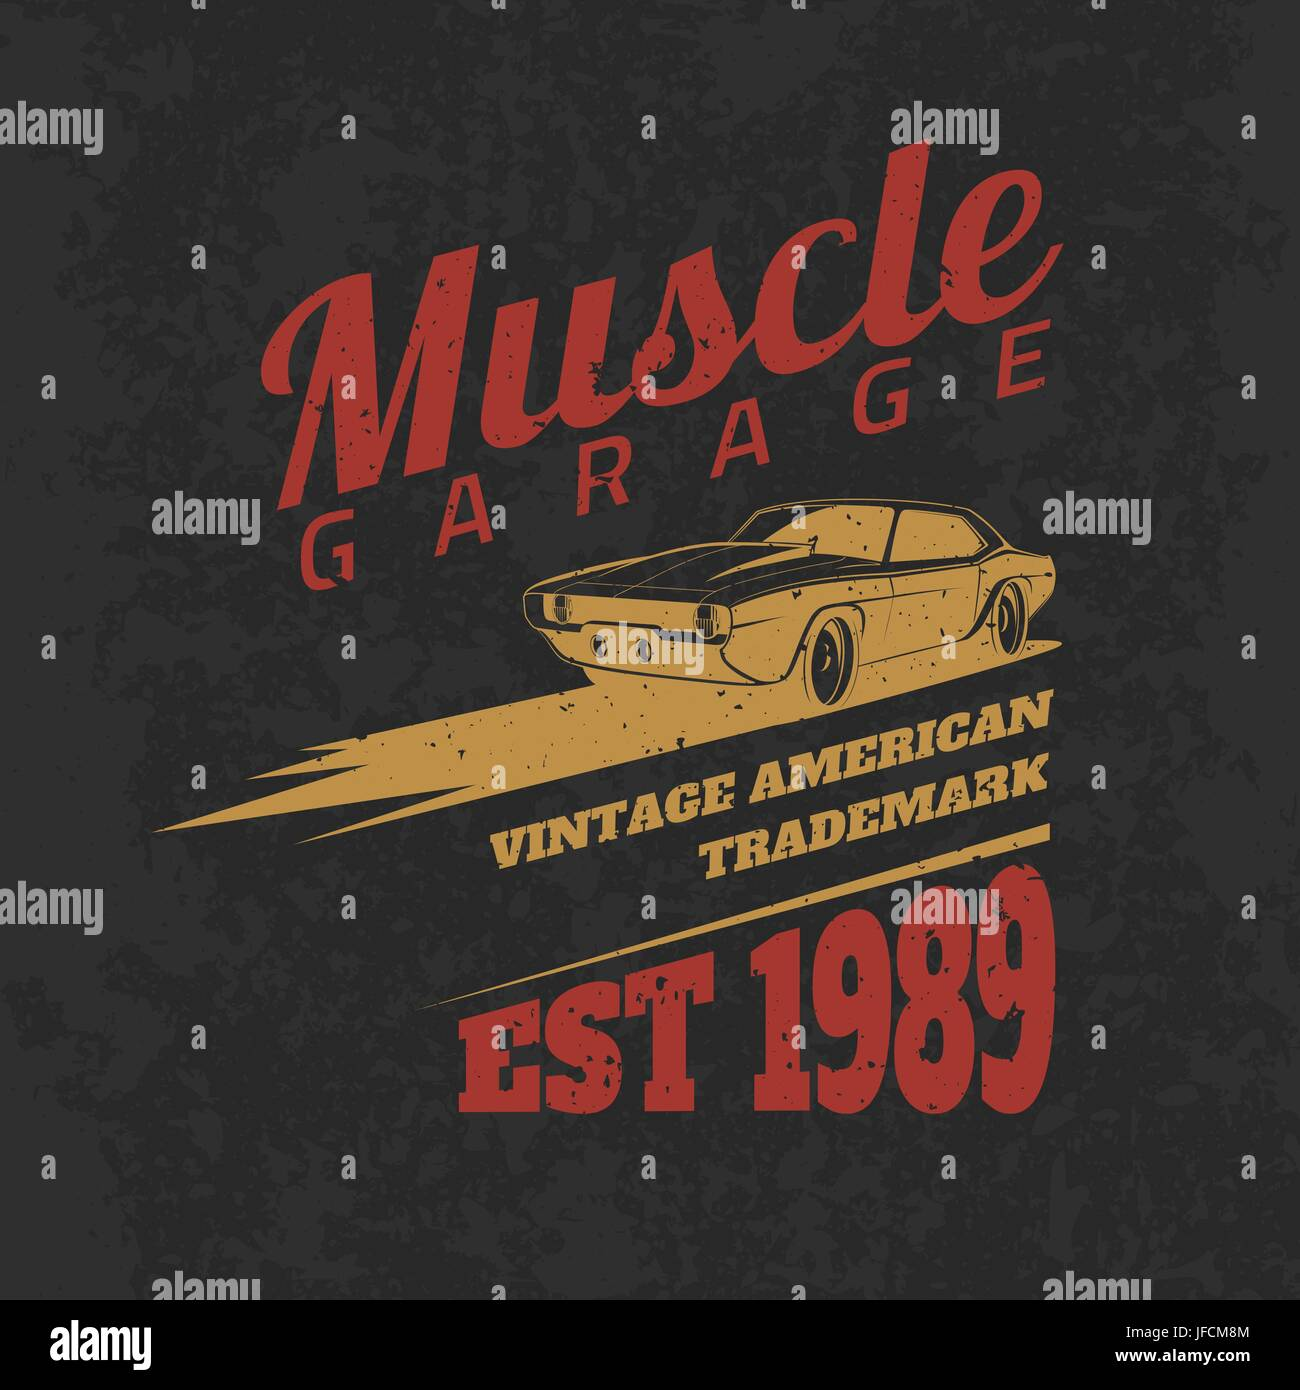 Vintage American Muscle Car Tee Print Design With Grunge TextureVector Old School Race Poster T Shirt